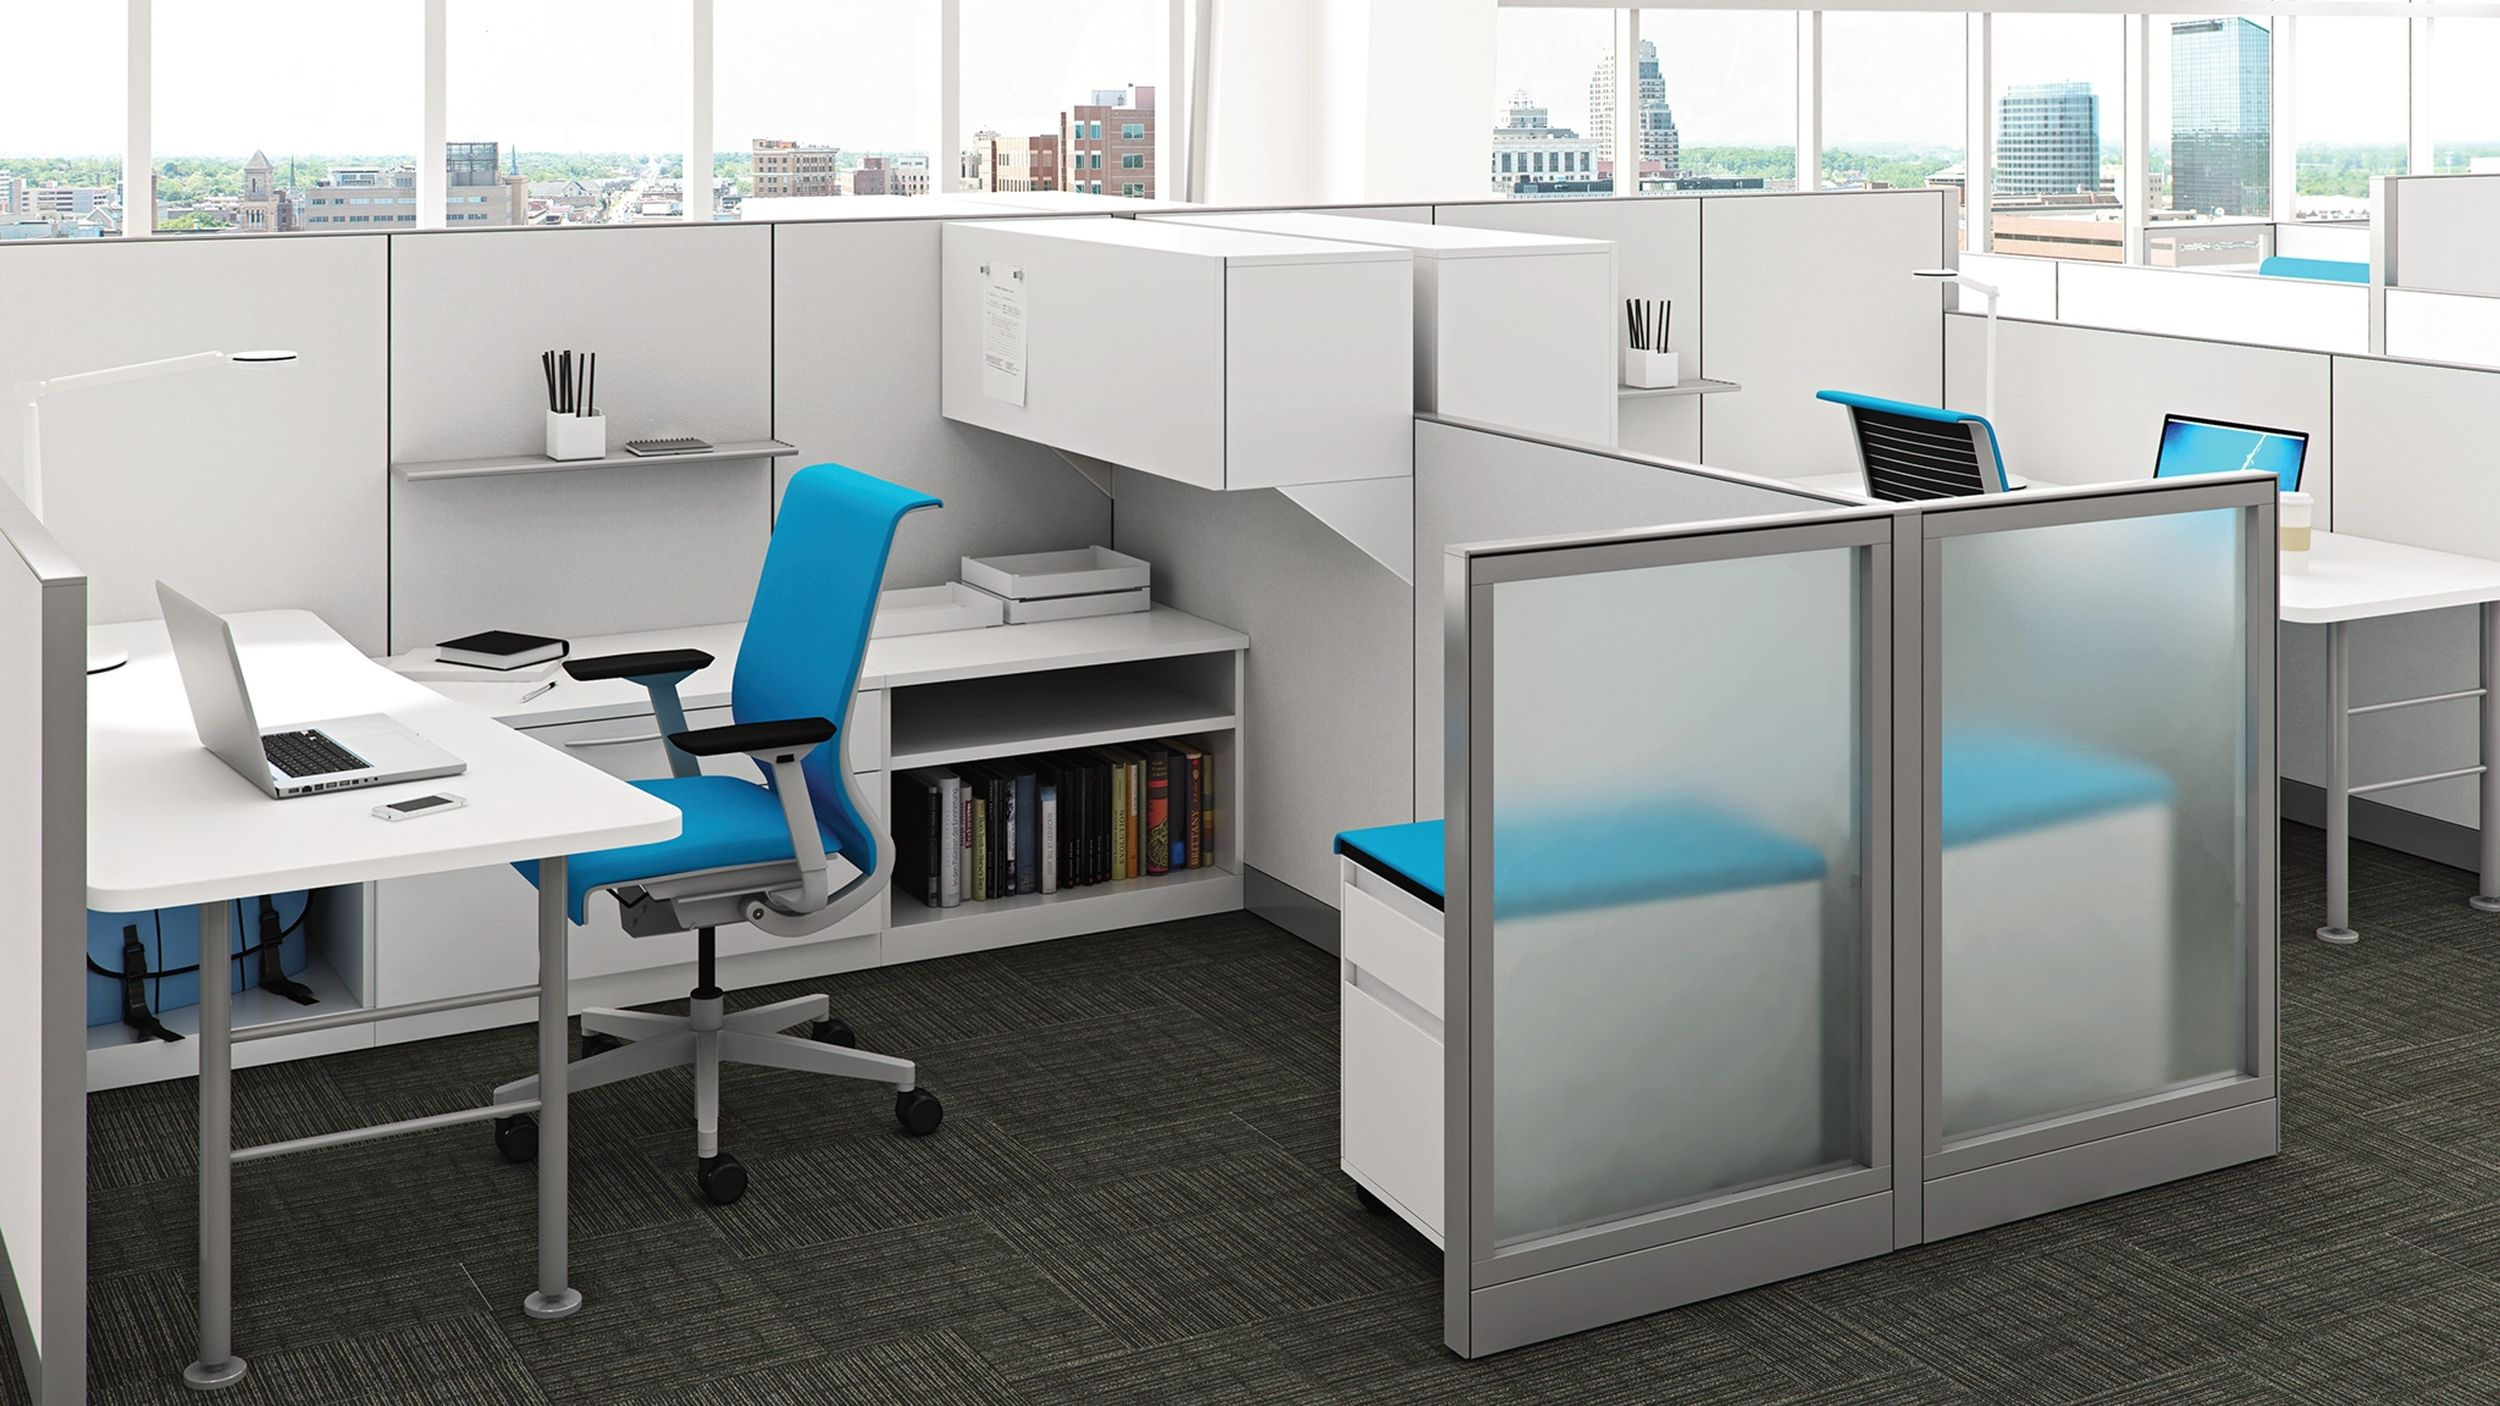 Explore Office Cubicles, Office Spaces And More